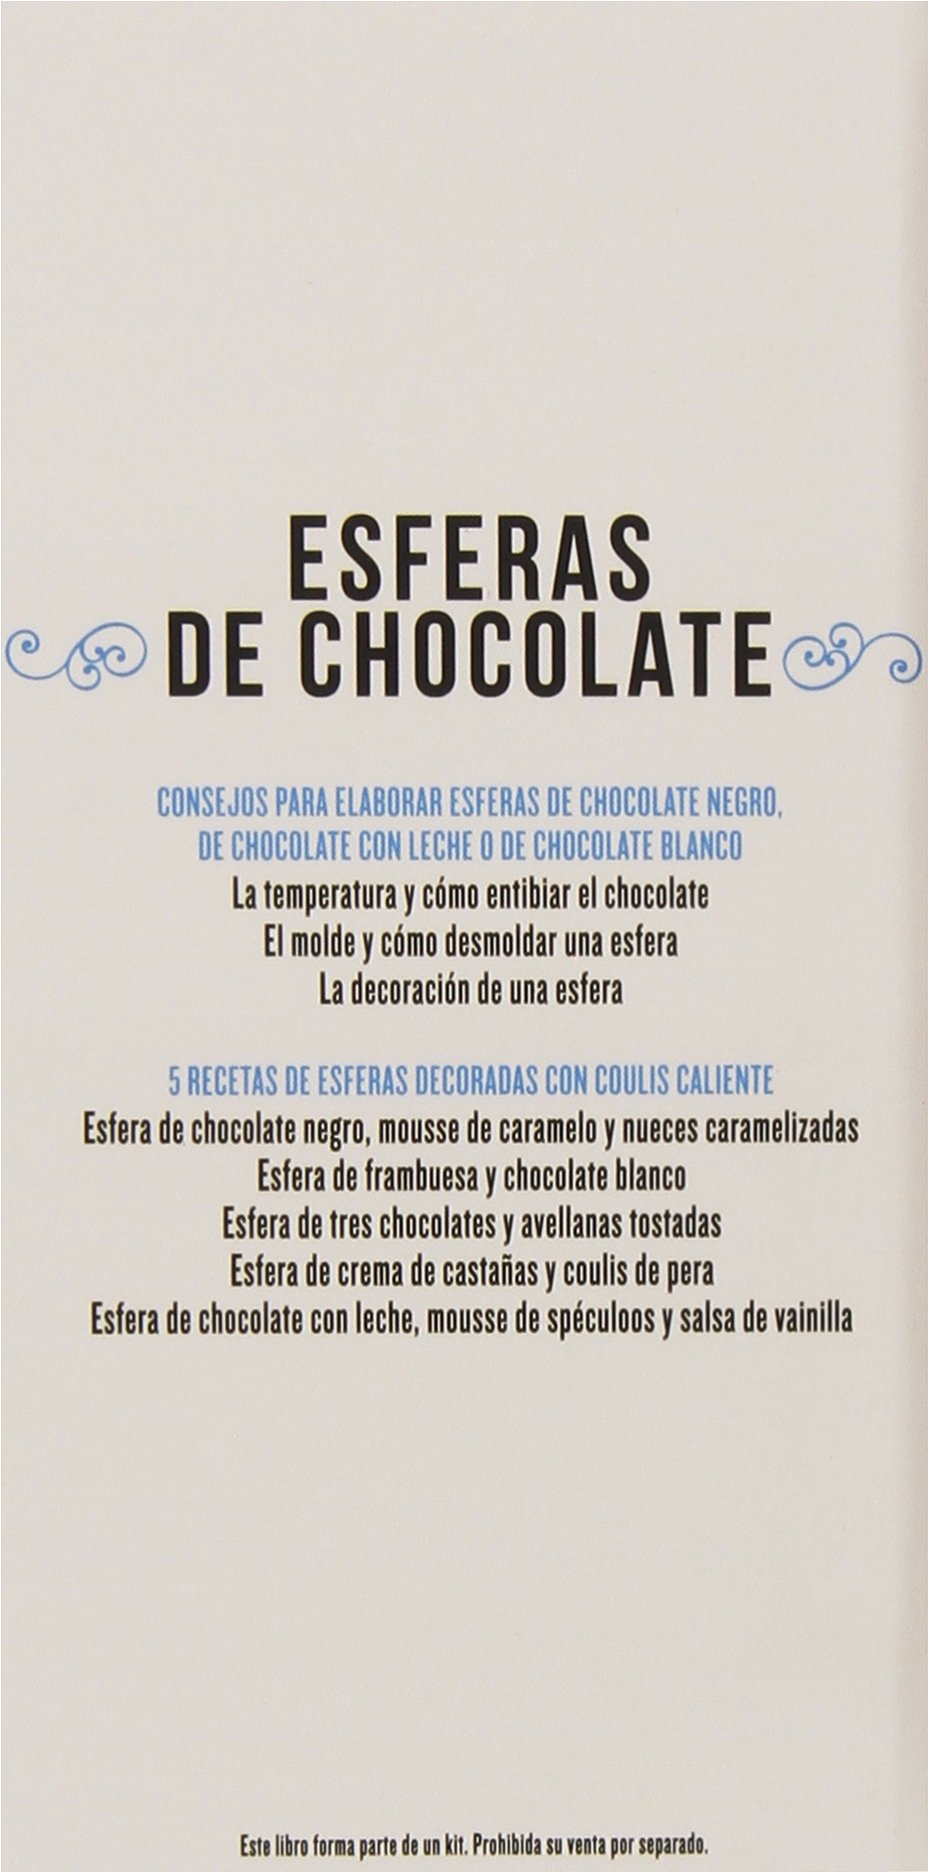 Kit Esferas de chocolate: Christelle Huet-Gomez: 9788448021511: Amazon.com: Books